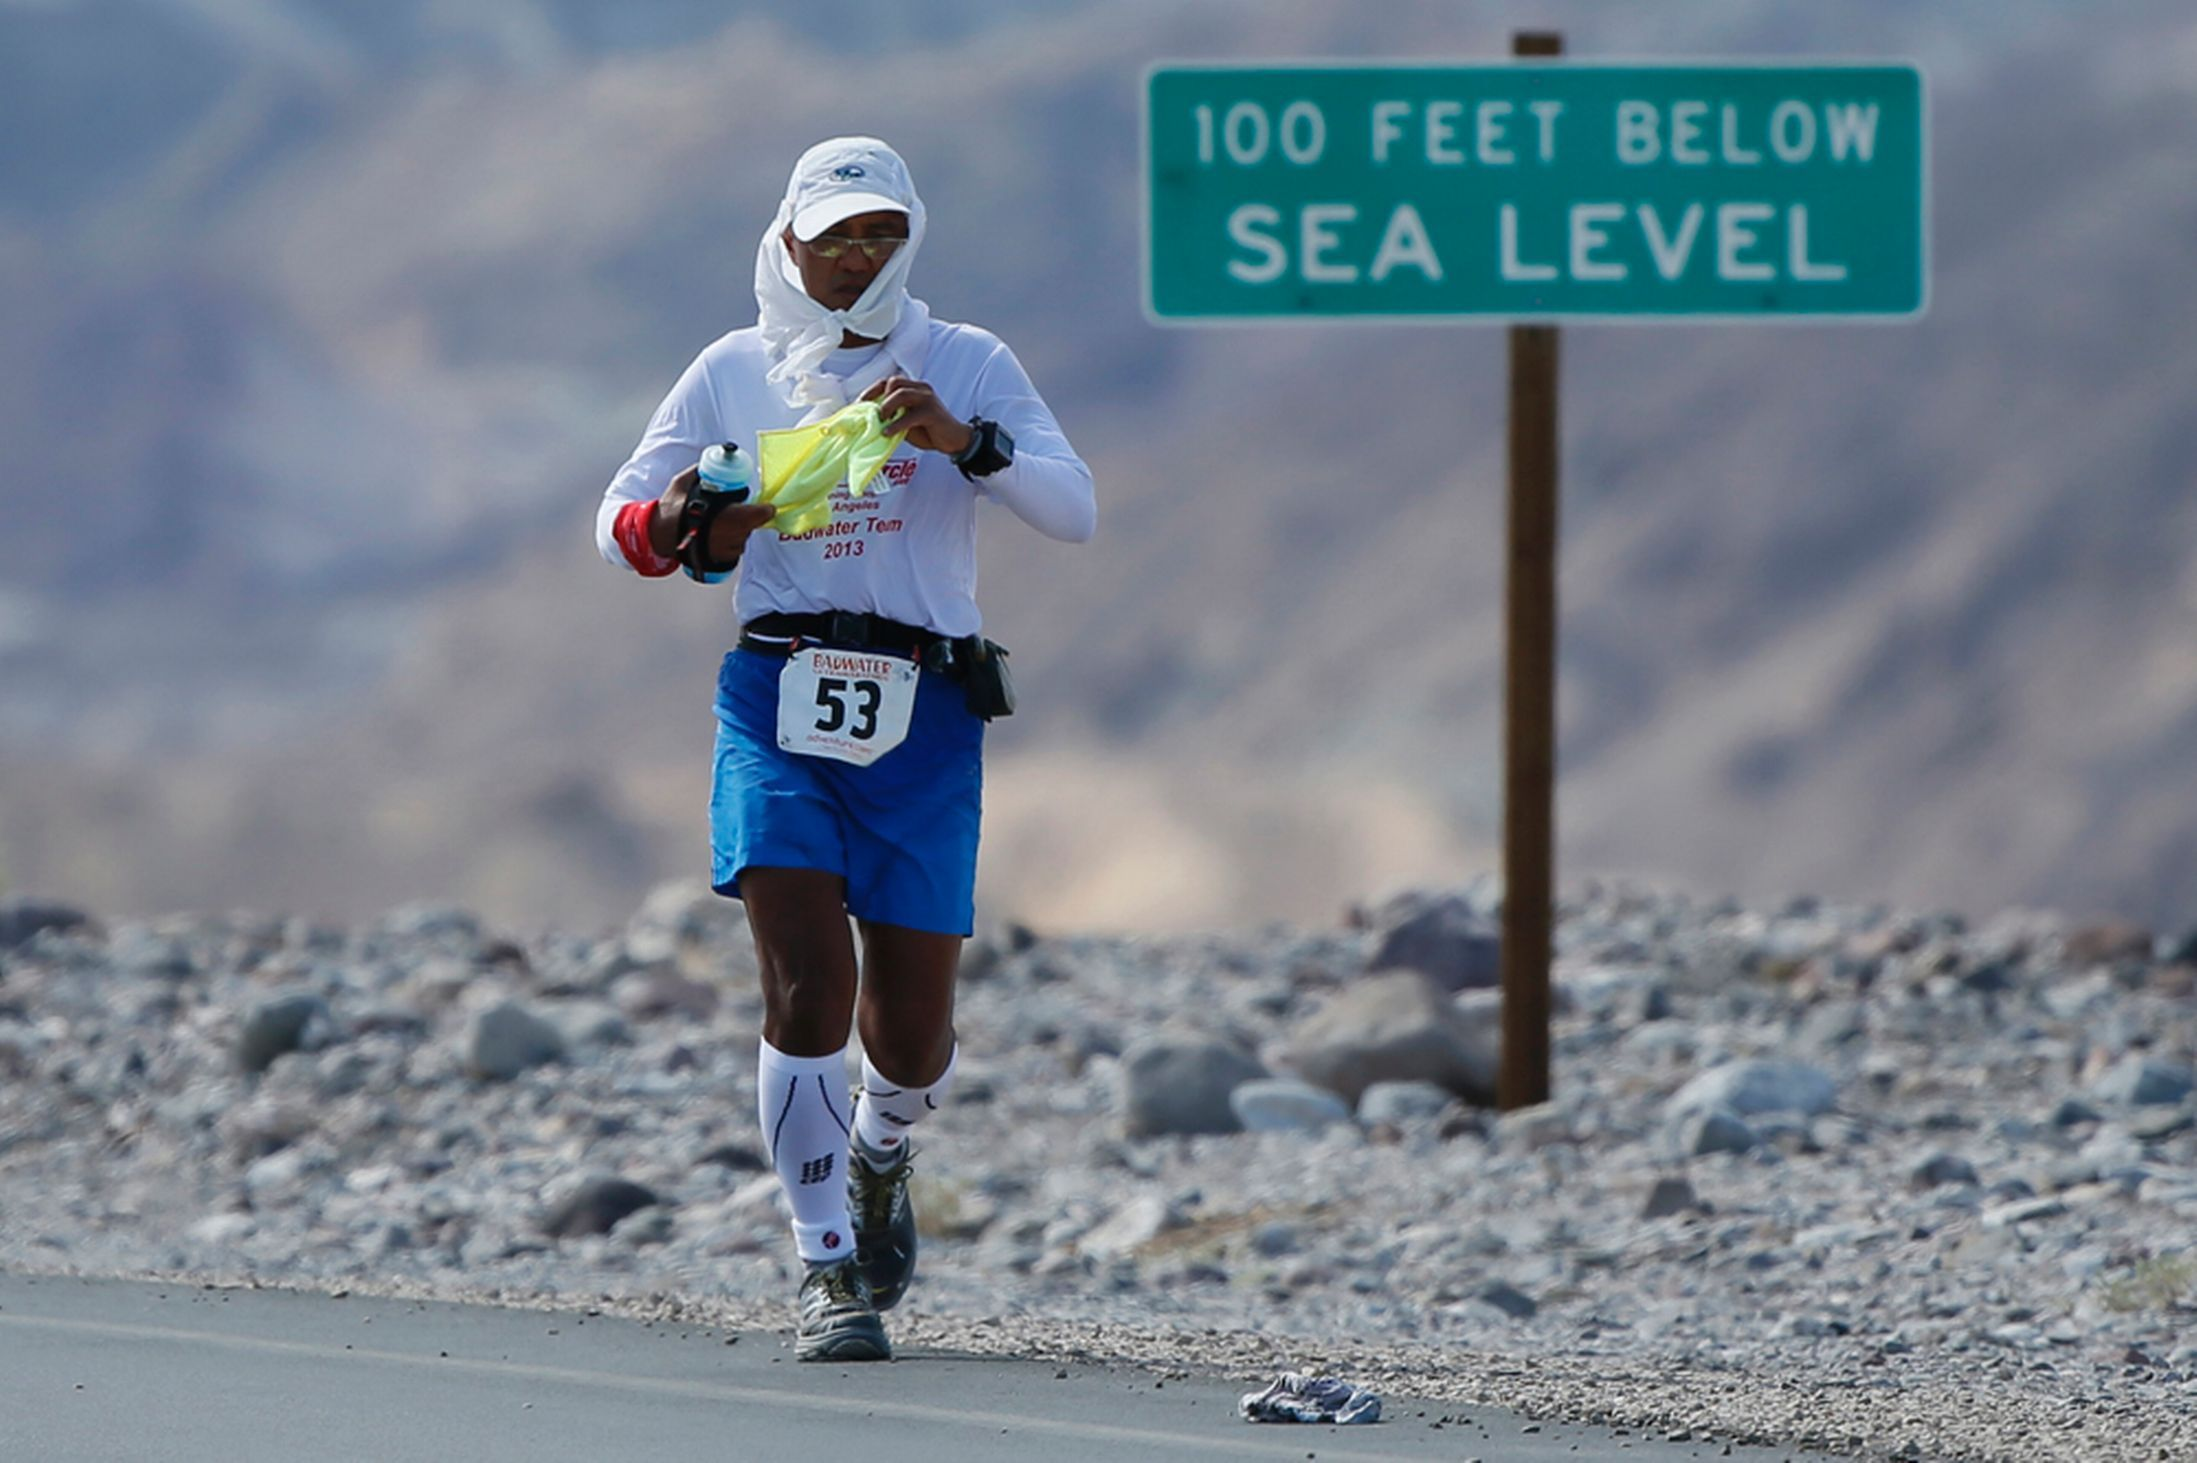 badwater death valley race | Badwater Ultramarathon Banned From Death Valley